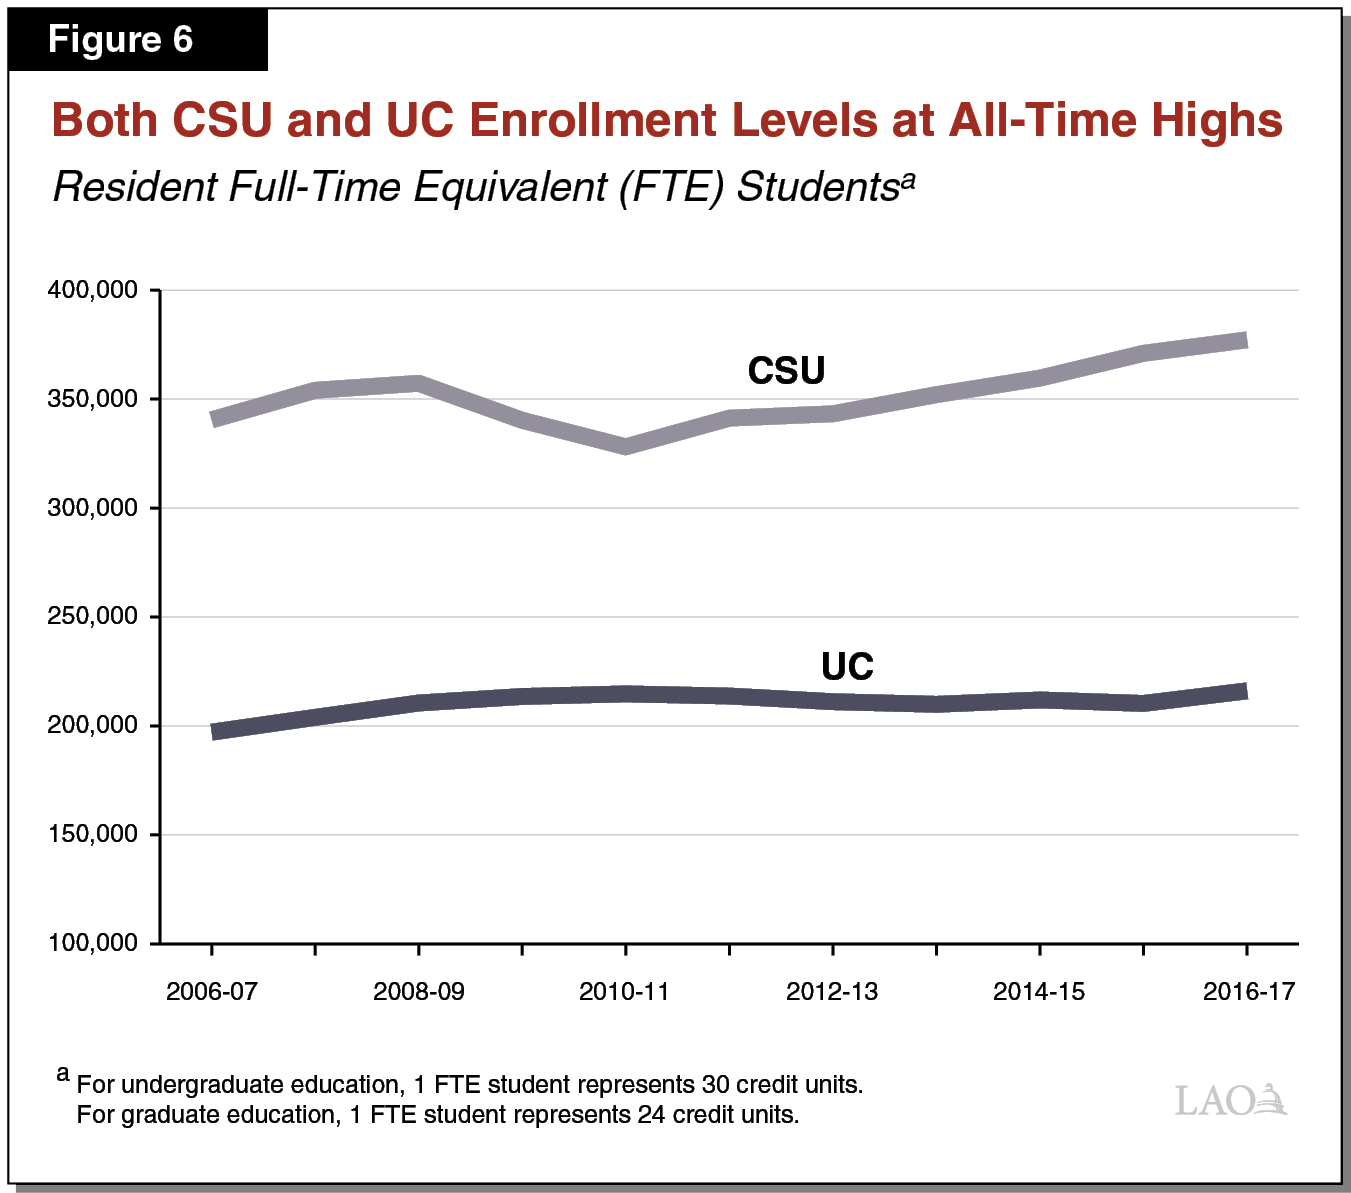 Figure 6 - Both CSU and UC Enrollment Levels at All-Time Highs